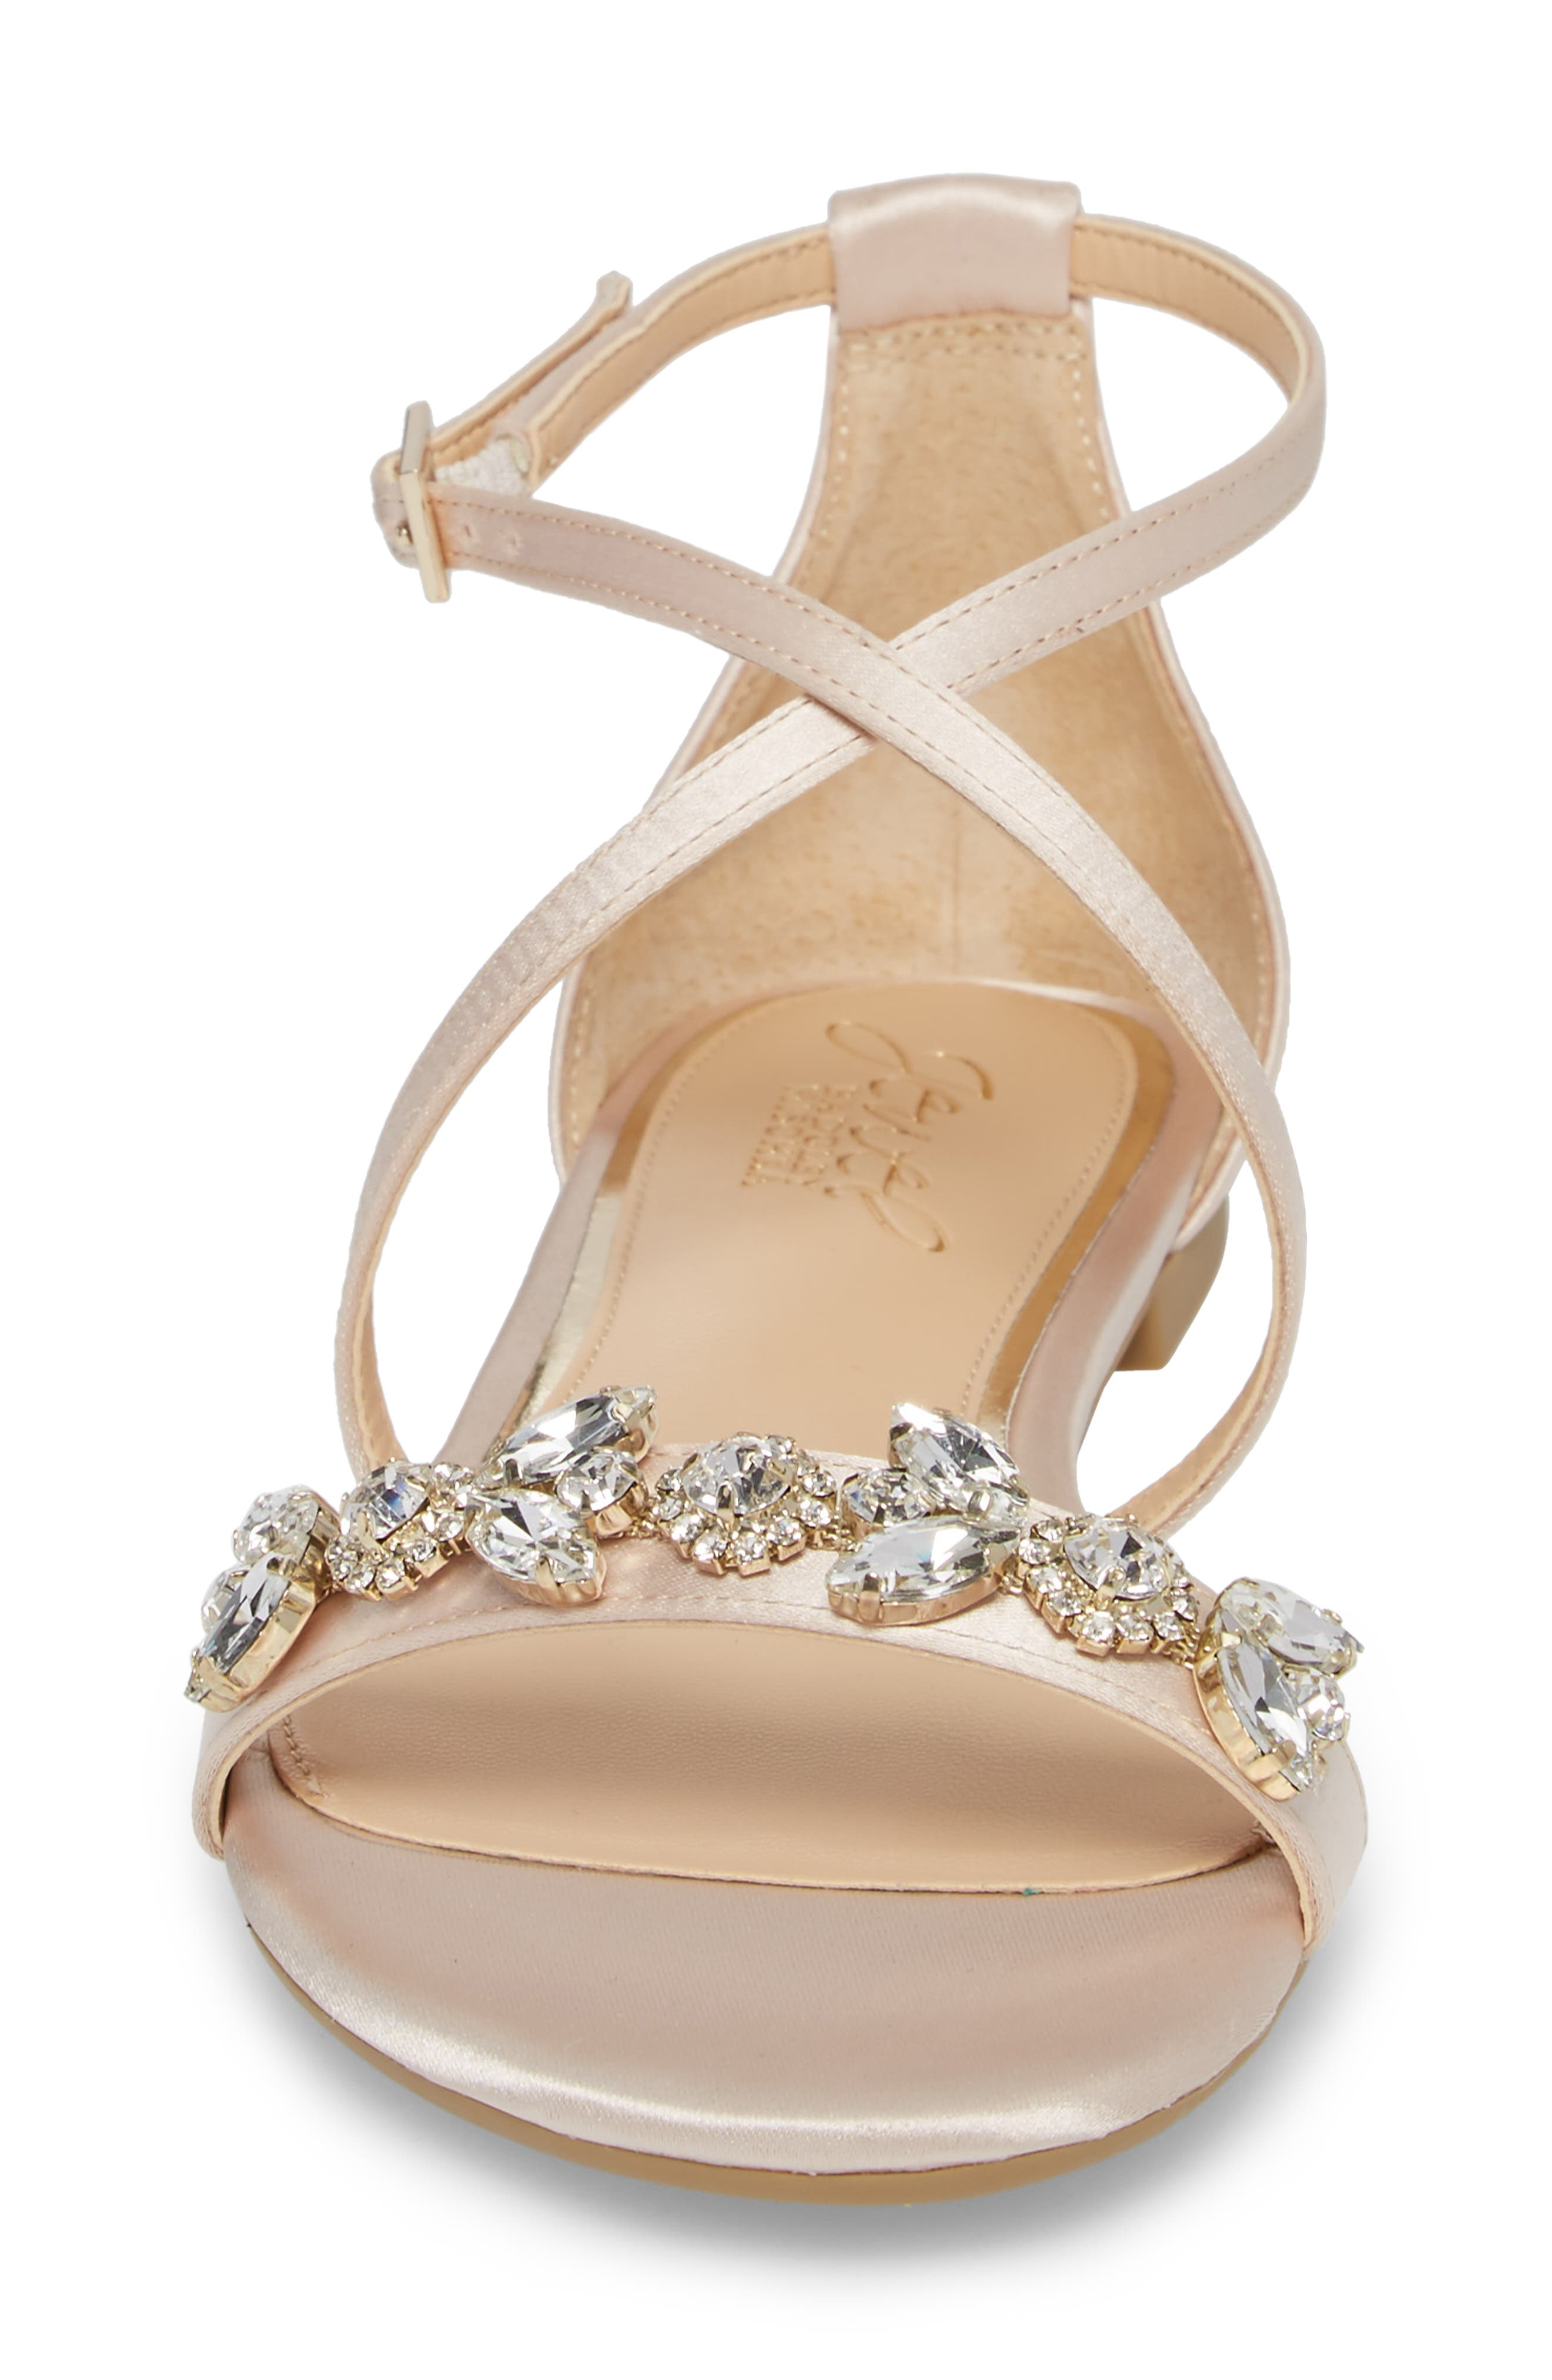 Tessy Embellished Sandal,                             Alternate thumbnail 4, color,                             CHAMPAGNE SATIN